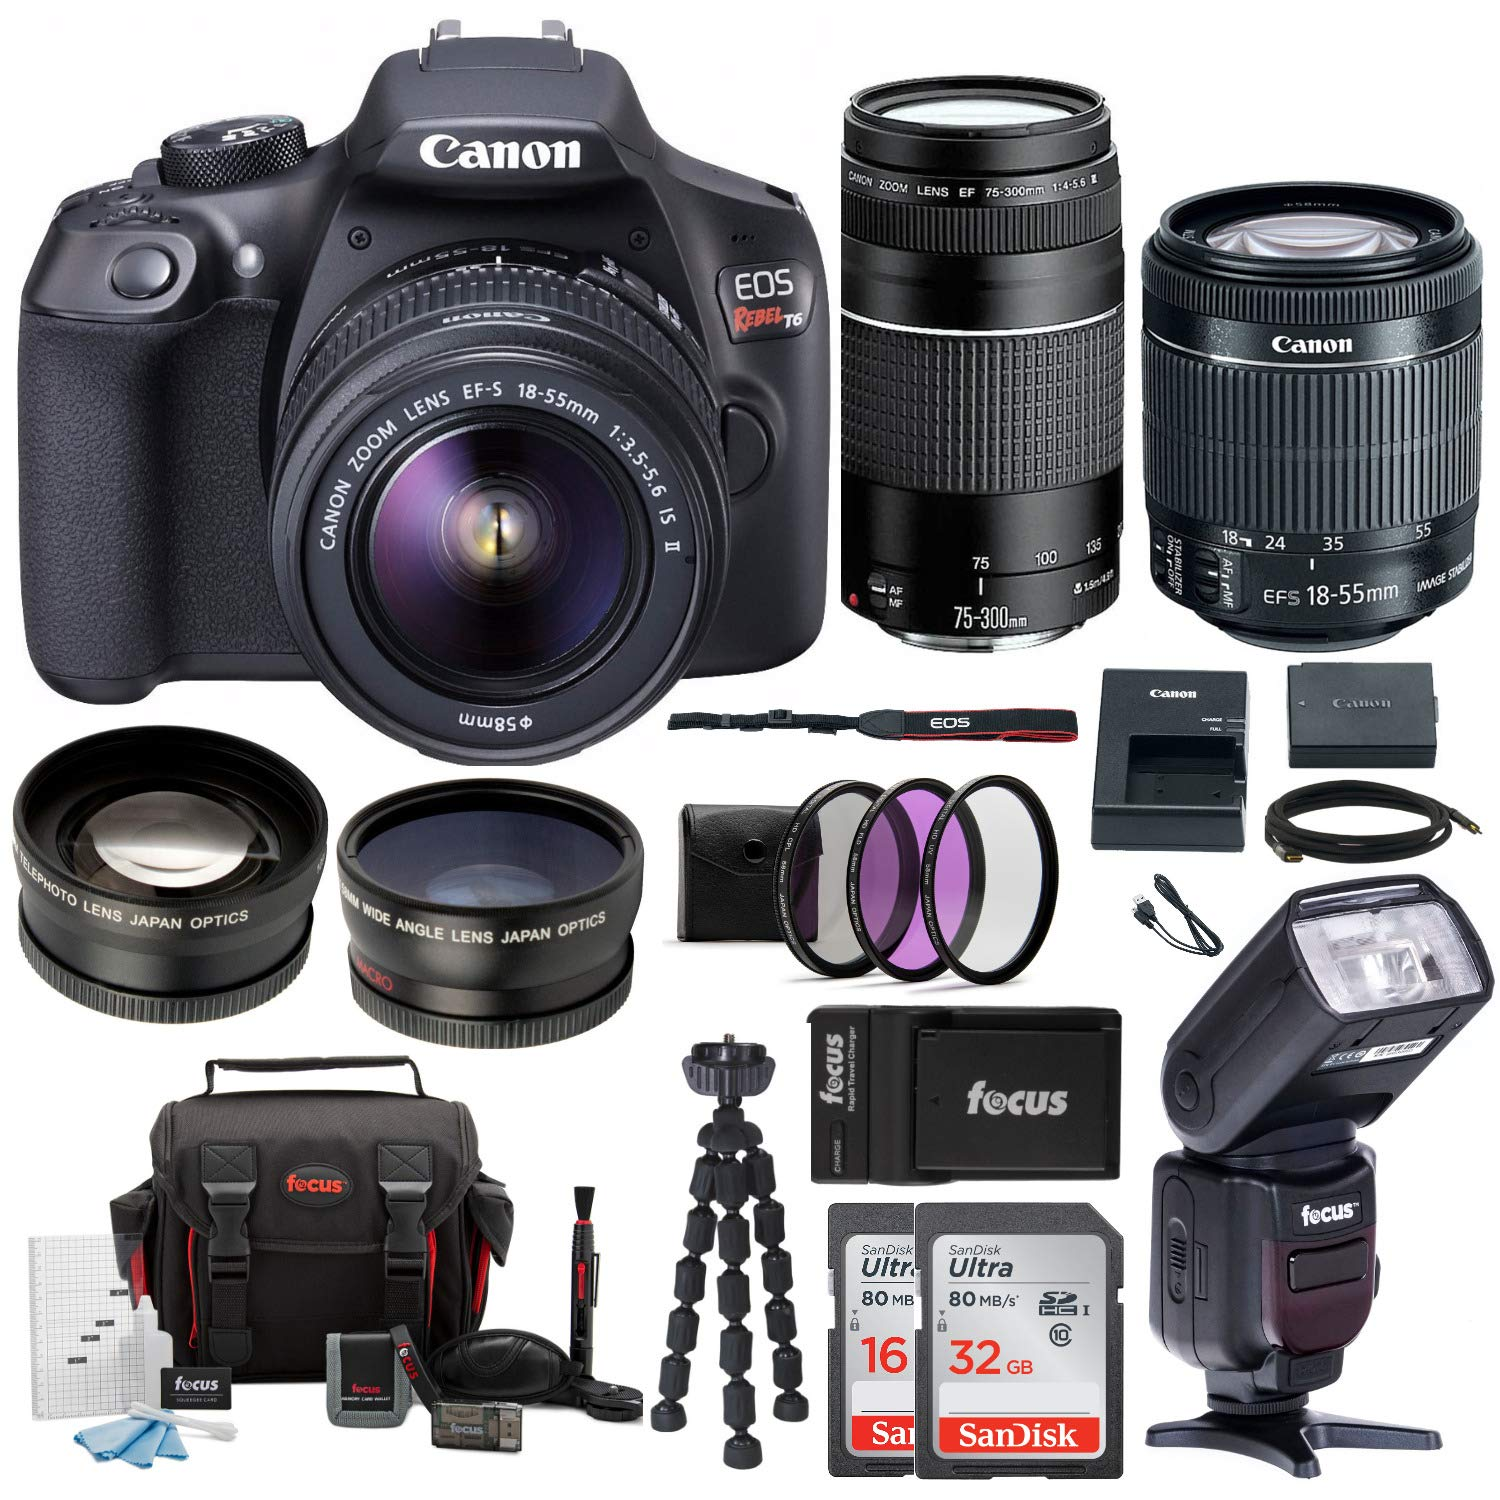 Canon EOS Rebel T6 Digital Camera :18 Megapixel 1080p HD Video DSLR Bundle  with 18-55mm &75-300mm Lenses Wide Angle & Telephoto Lens 32GB &16GB SD